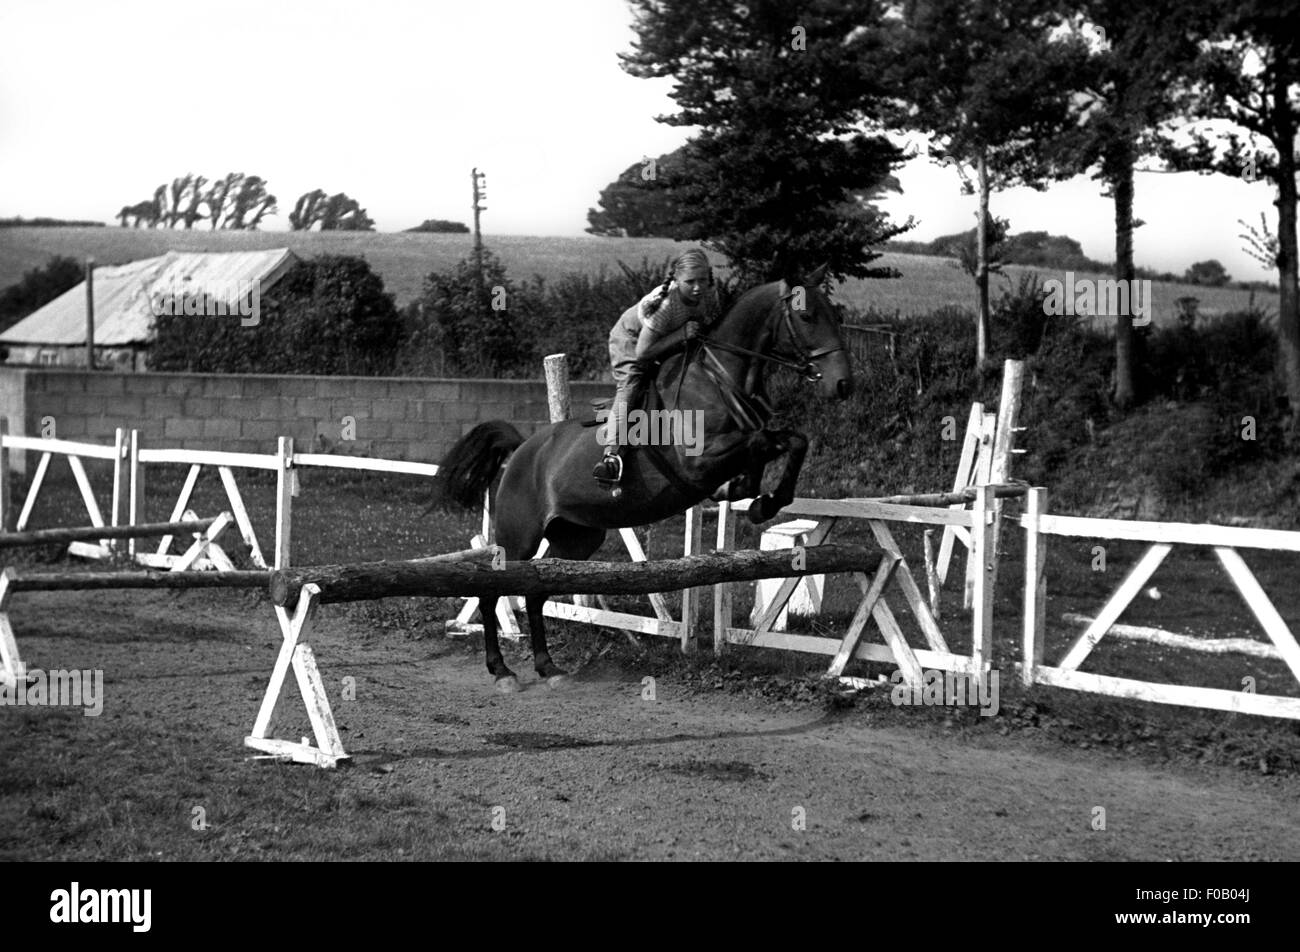 A girl practicing showjumping - Stock Image